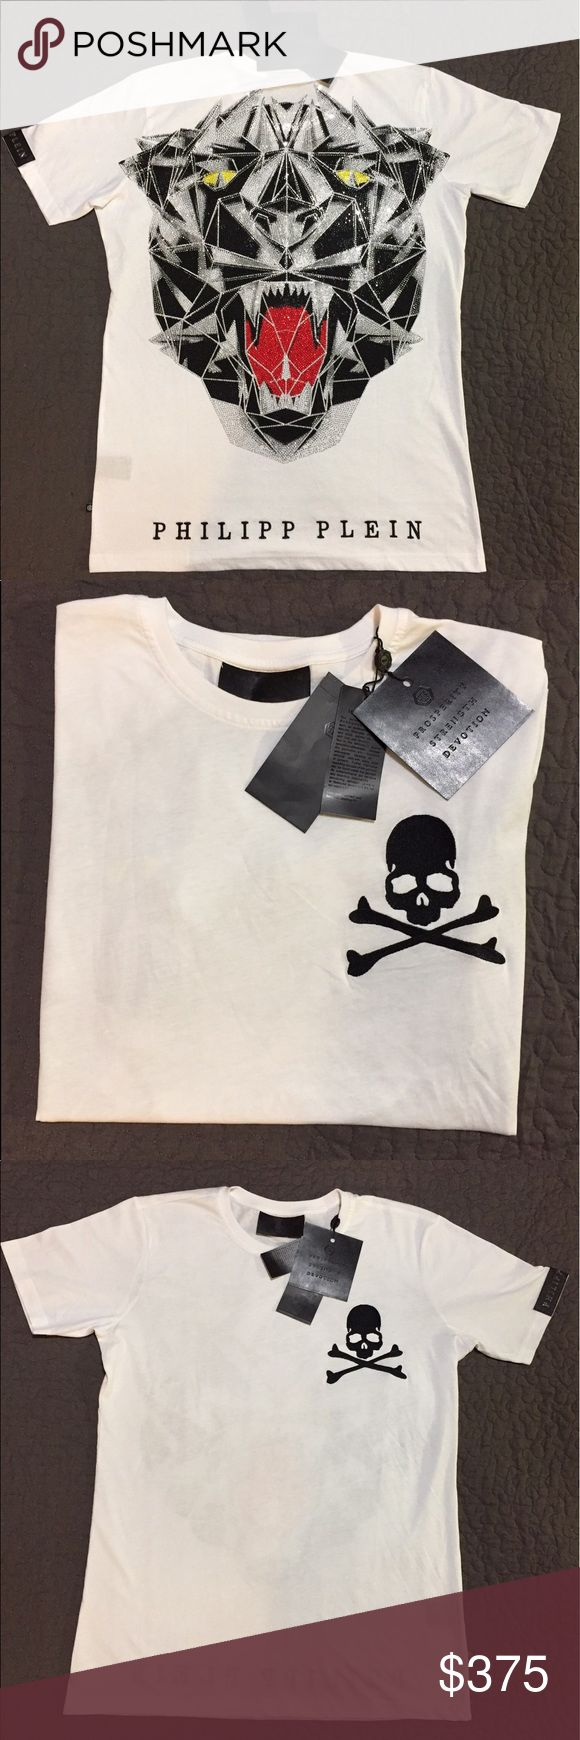 Philipp Plein T-shirt Philipp Plein angry eyes tiger T-shirt. Sold out online! It's brand new with tags! Philipp Plein Shirts Tees - Short Sleeve